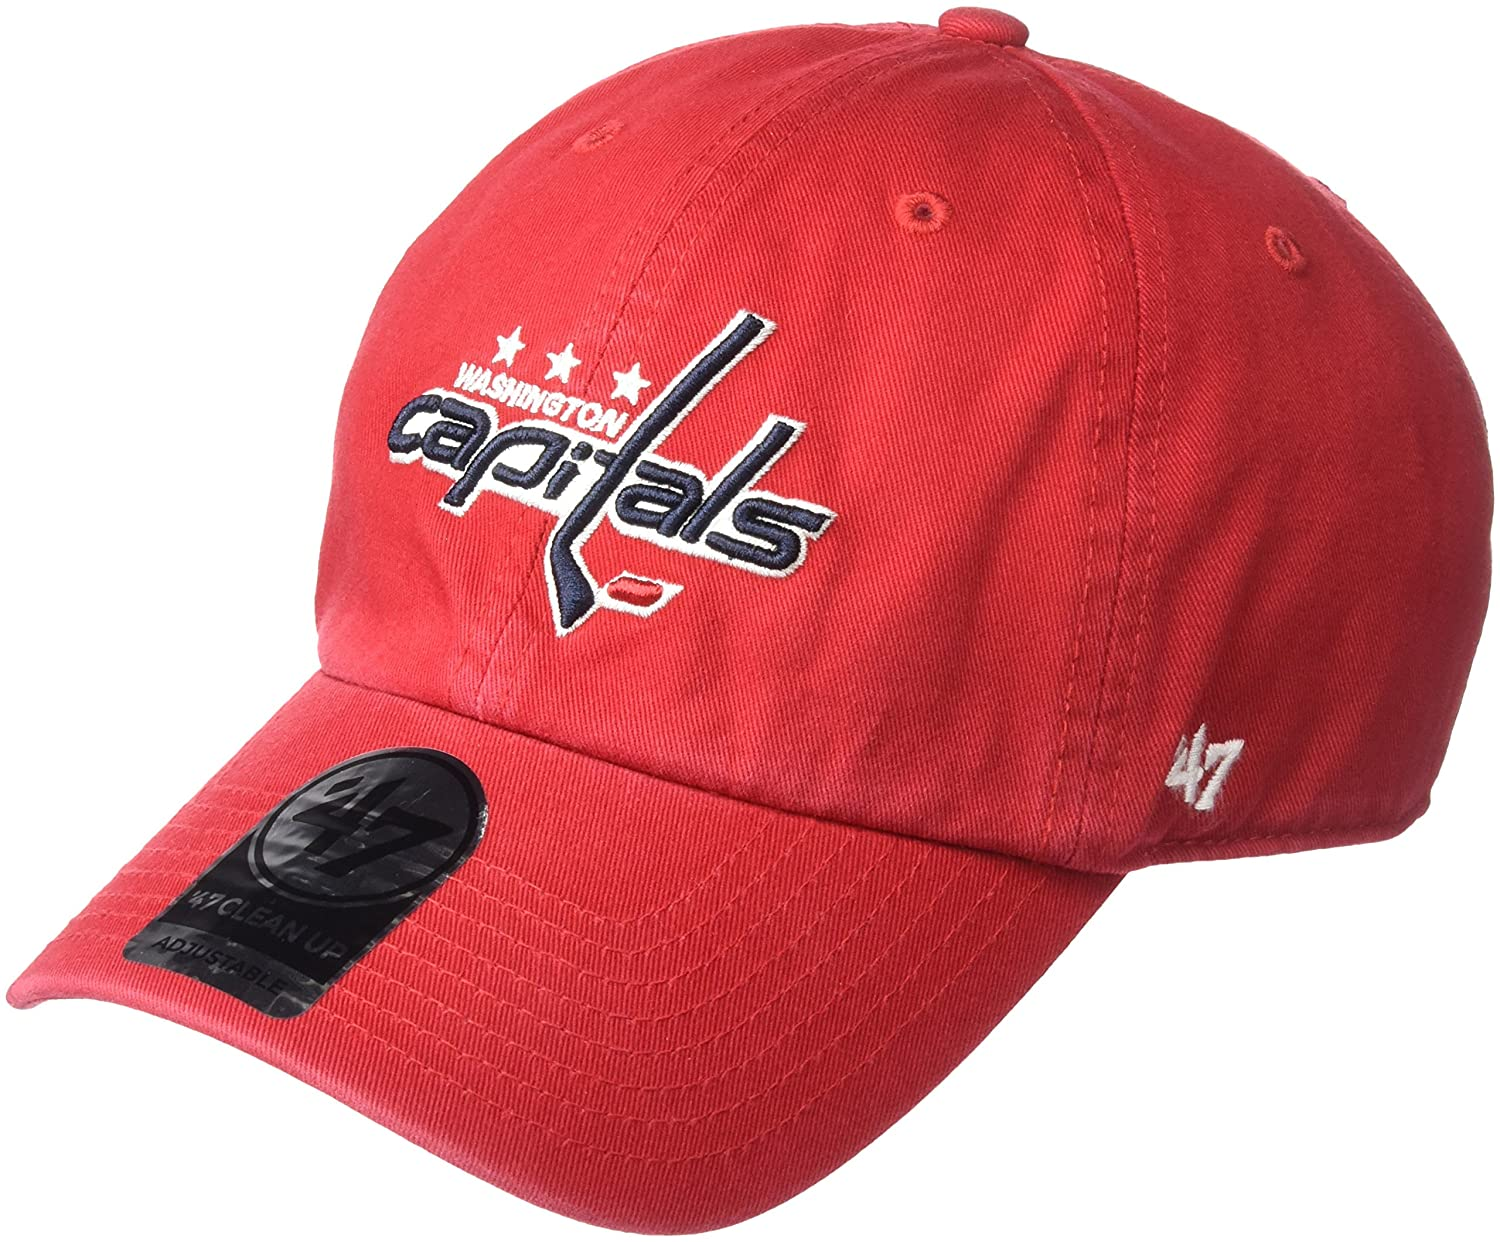 watch 90edf 4cce7 Amazon.com    47 NHL Washington Capitals Clean Up Adjustable Hat, One Size,  Red   Baseball Caps   Sports   Outdoors